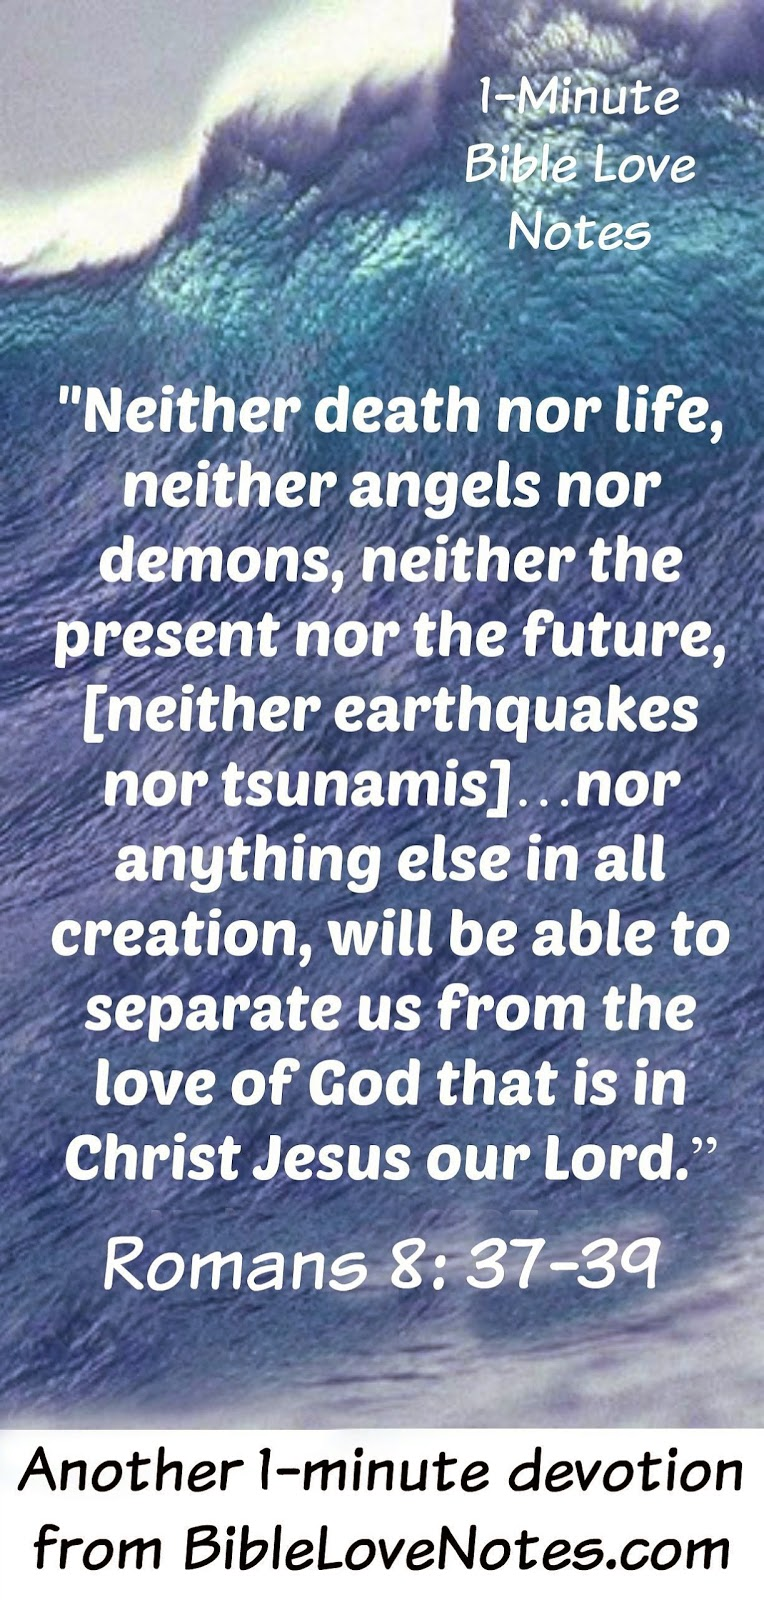 Romans 8:37-39, Tsunamis, natural disasters, God is always with us